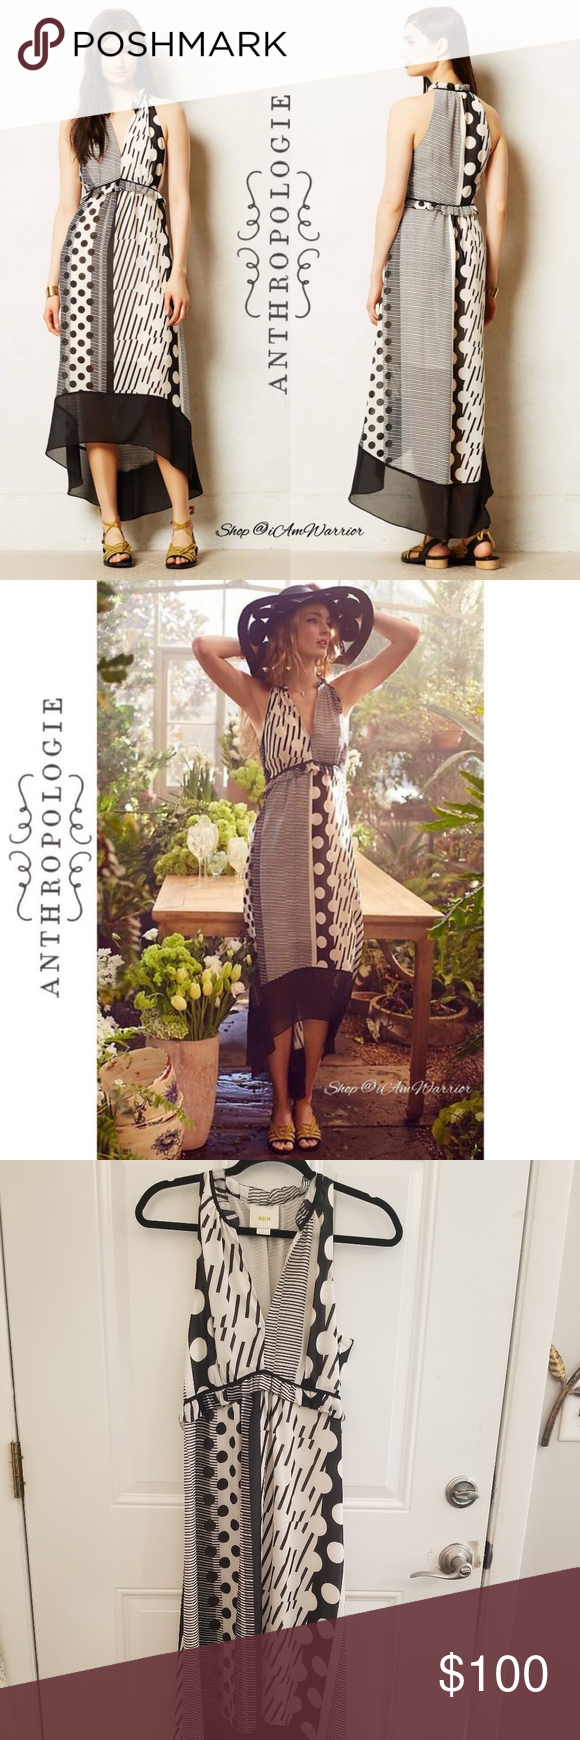 be3c236ce040e Anthropologie Black Cream Maeve & Stripes/Dot Maxi Anthropologie Maeve black  & cream stripes/dot maxi dress Casual Maxi Dresses Anthropologie Dresses  Maxi